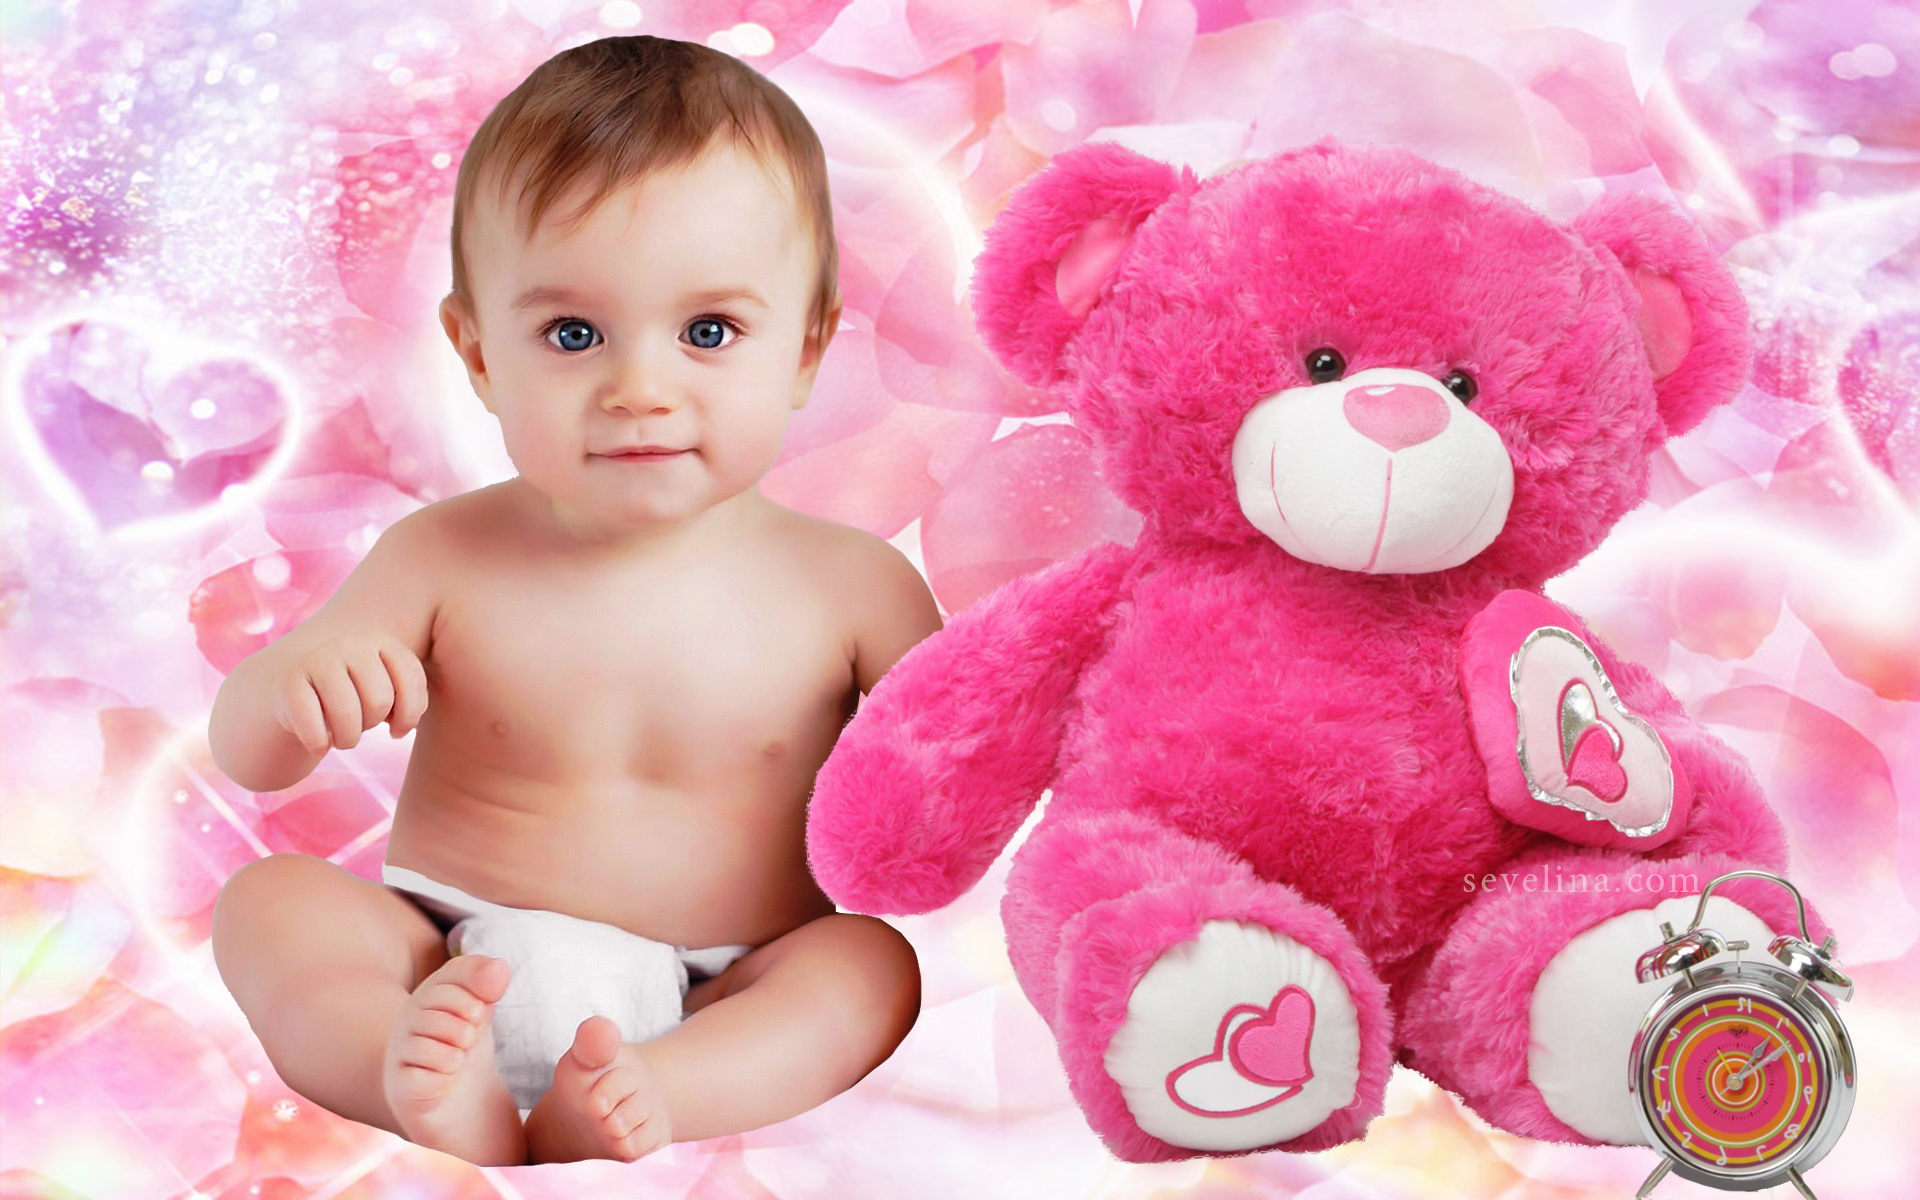 Love You Baby Hd Wallpaper : Top 14 amazing Valentines day wallpaper 2014 Sevelina ...